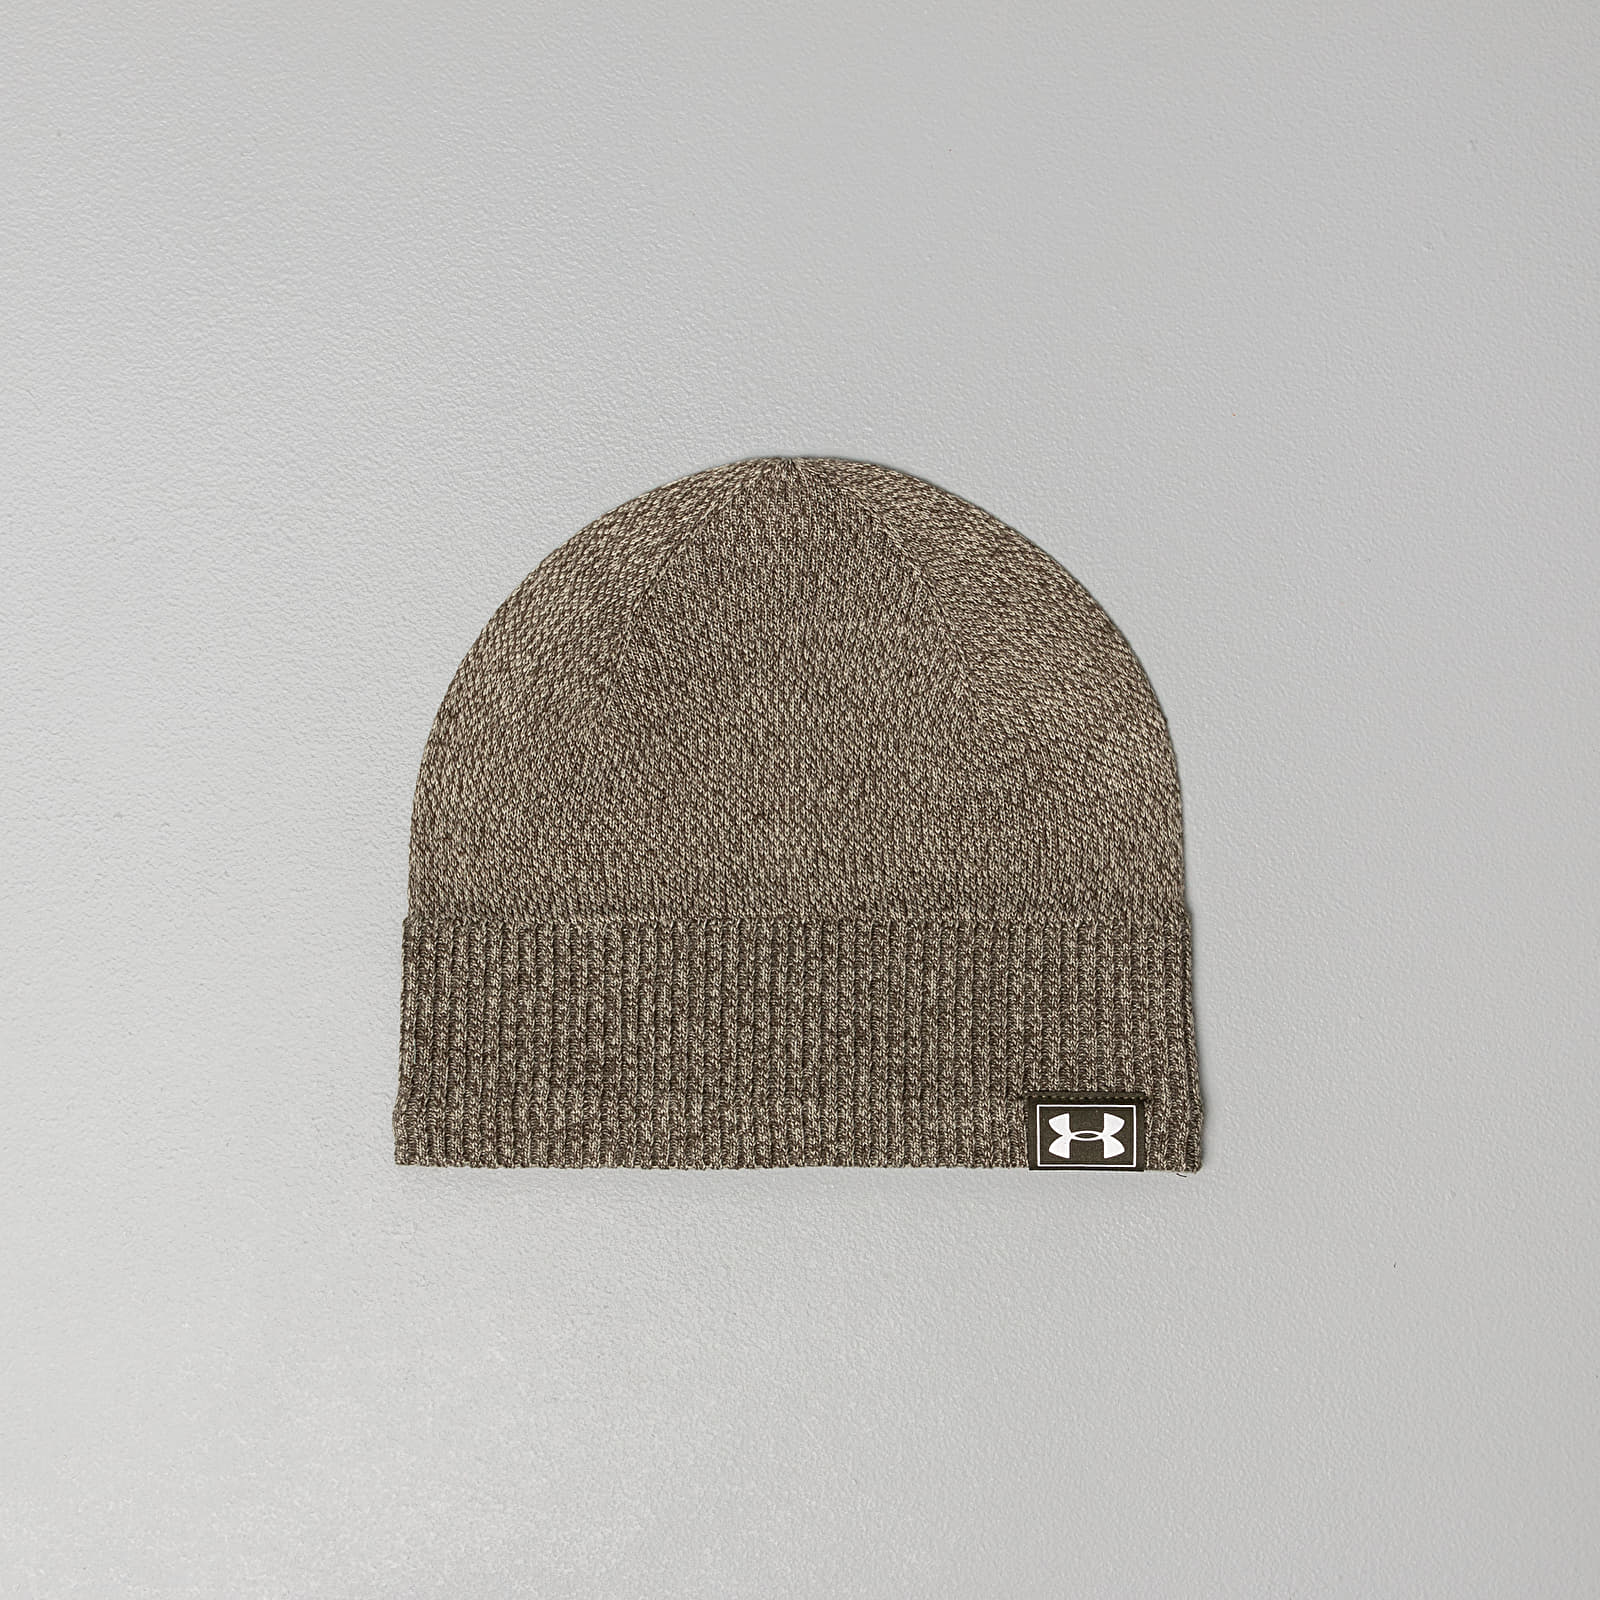 Sapkák Under Armour Reactor Knit Beanie Olive